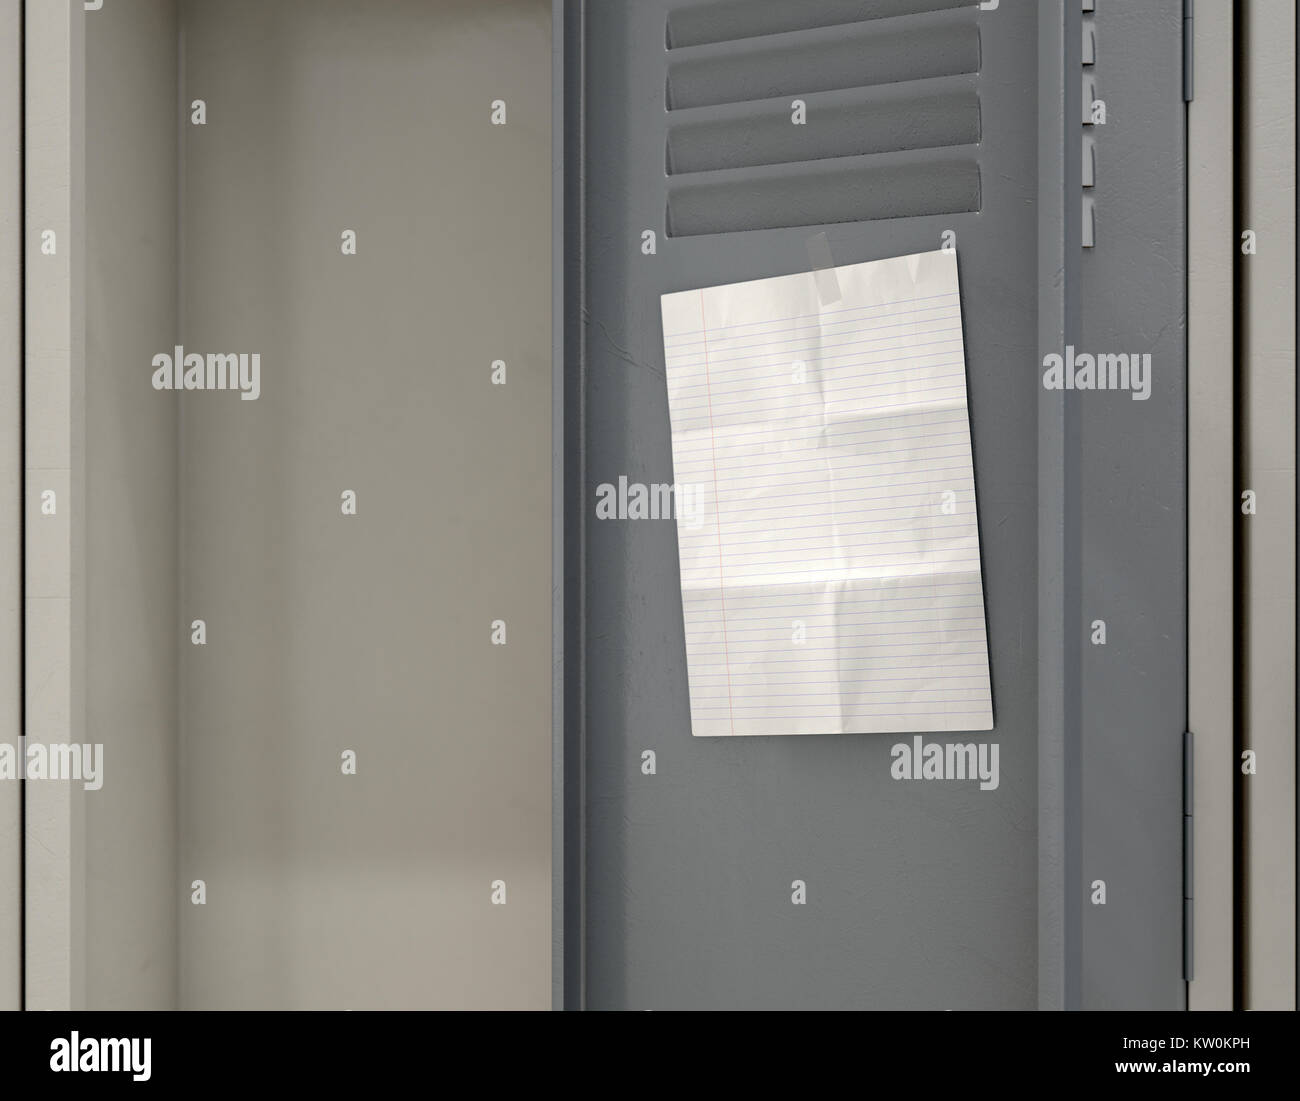 A Row Of Metal School Lockers With One Open Door And A Blank Page Stock Photo Alamy